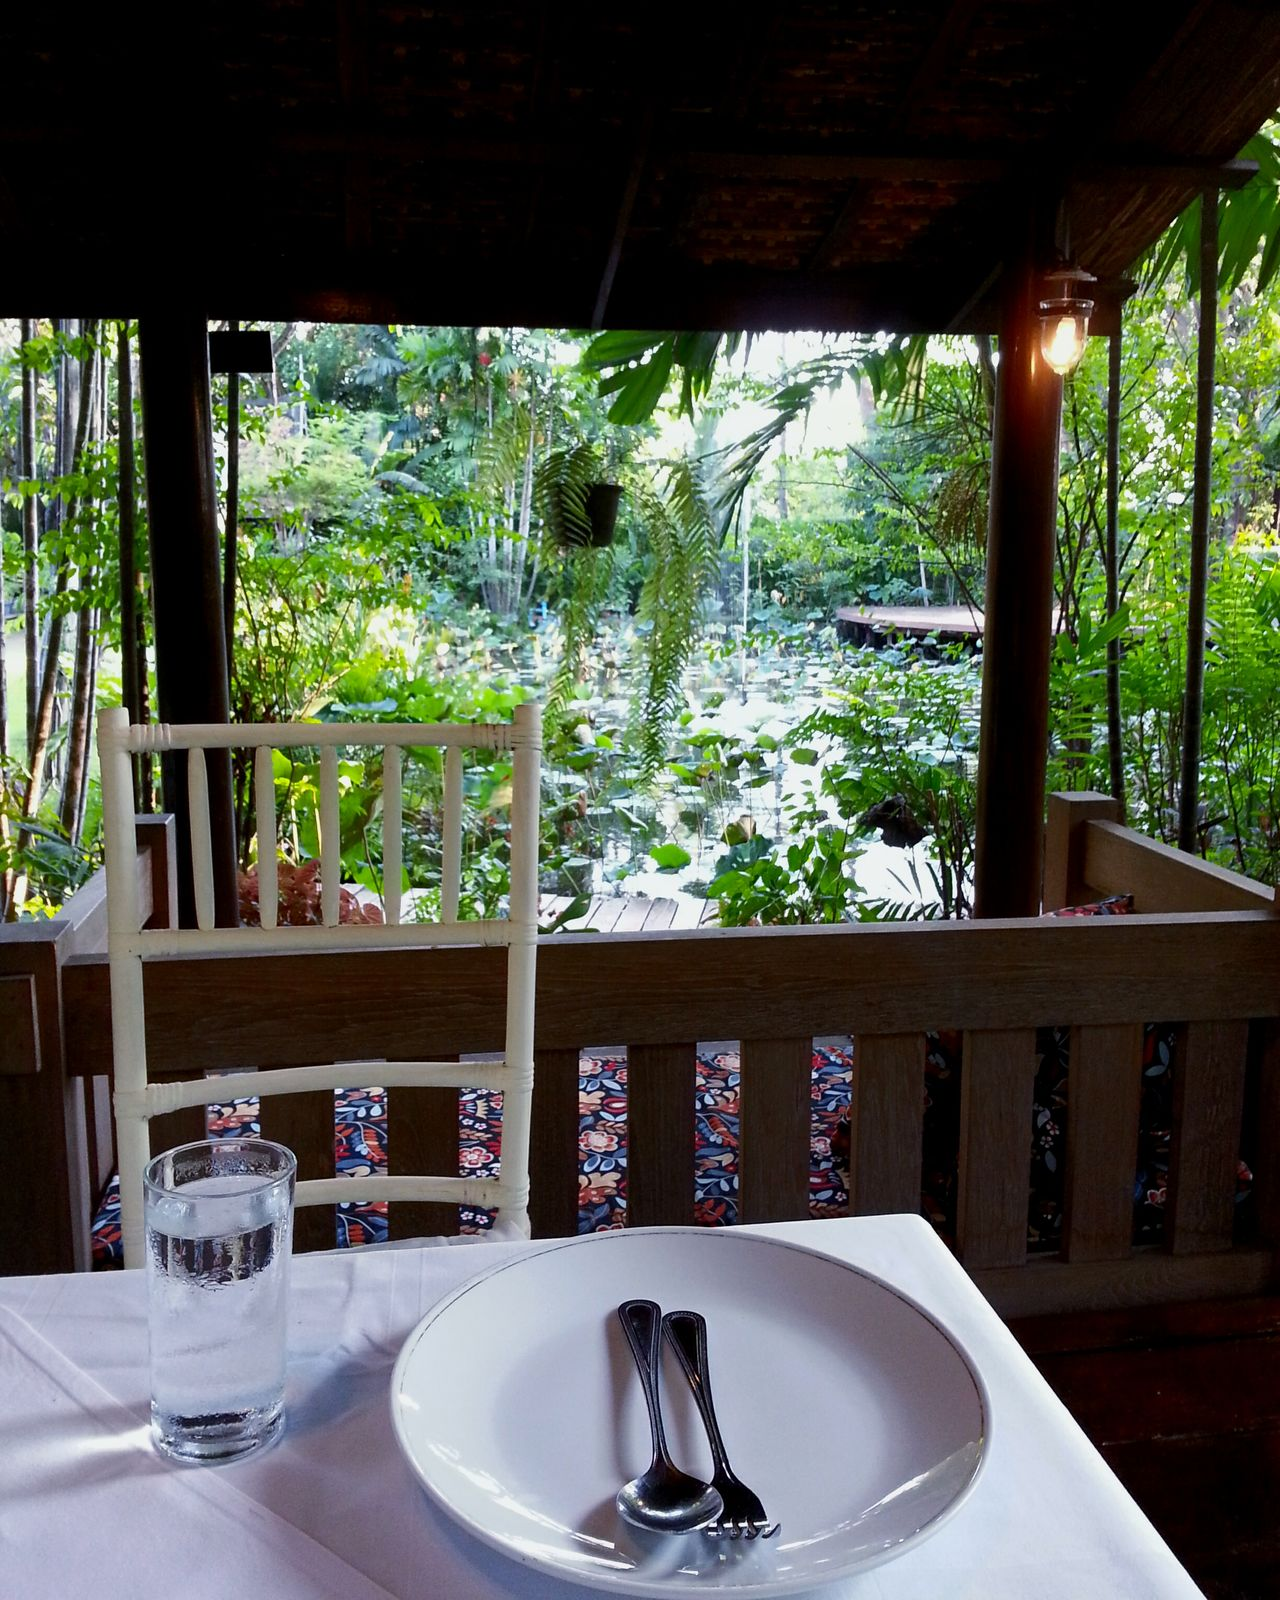 Dinner Dinner Time Garden Restuarant Chill Chilling Trees And Nature Dinner With Family Bangkok Thailand Meal Mealtimes Dinner Table Dinnertime